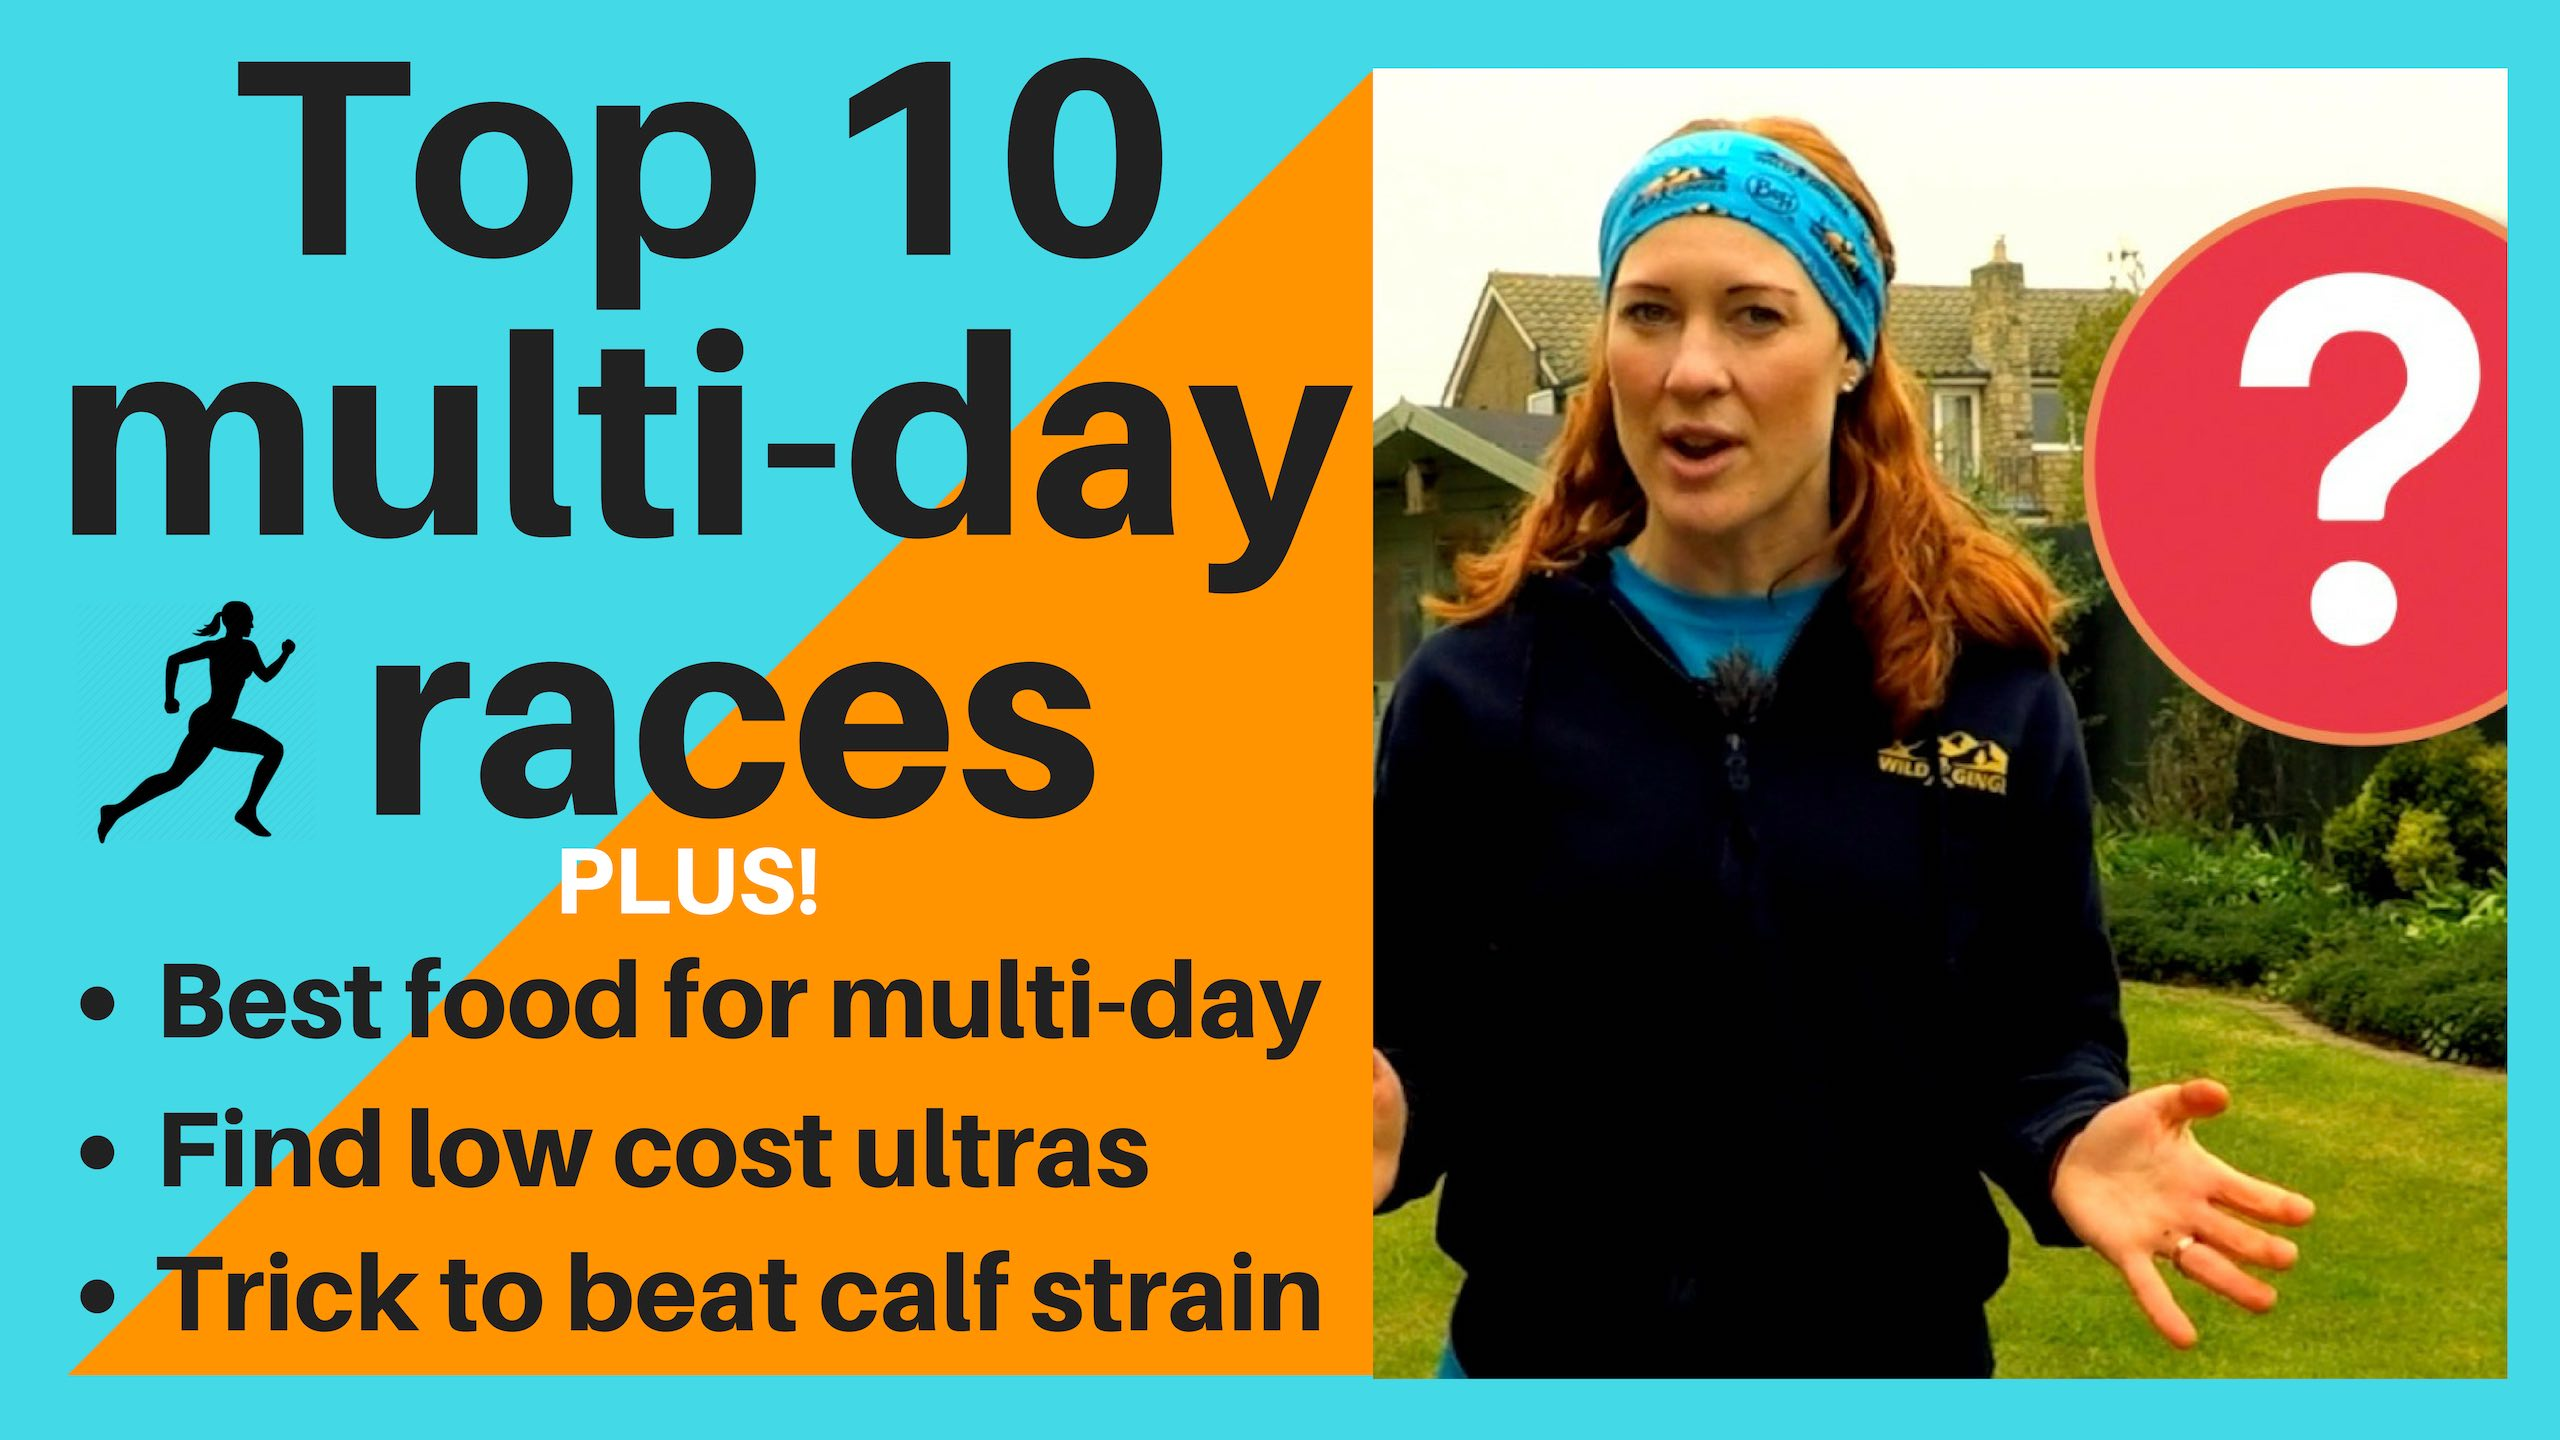 Top 10 multi-day races (PLUS best food, low cost ultra marathons & trick to beat calf & Achilles strain)